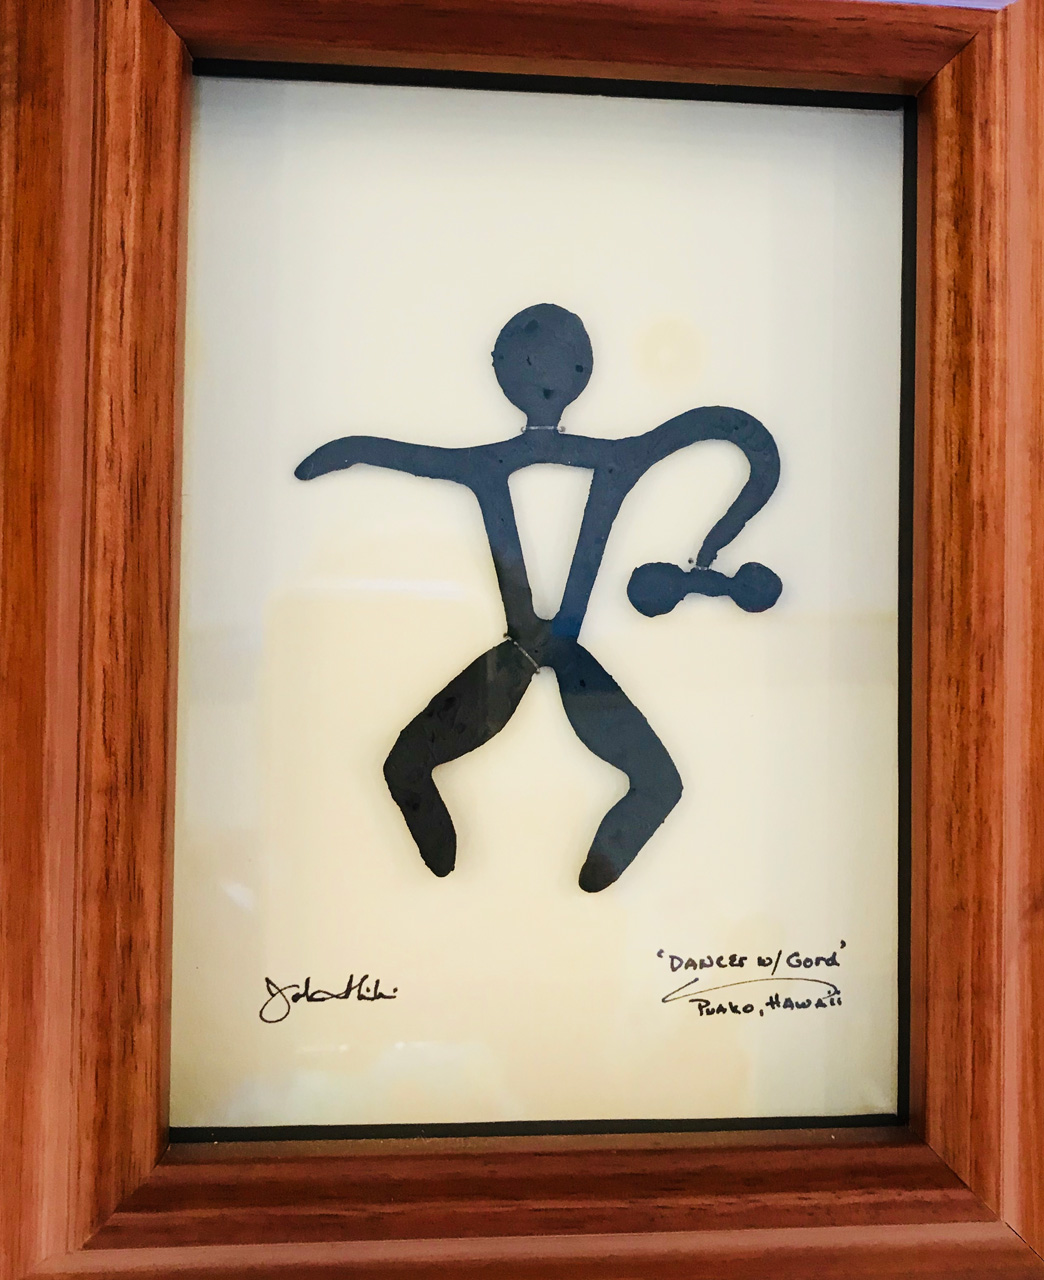 Framed metal sculpture entitled Dancer with Gourd by John Ilnicki